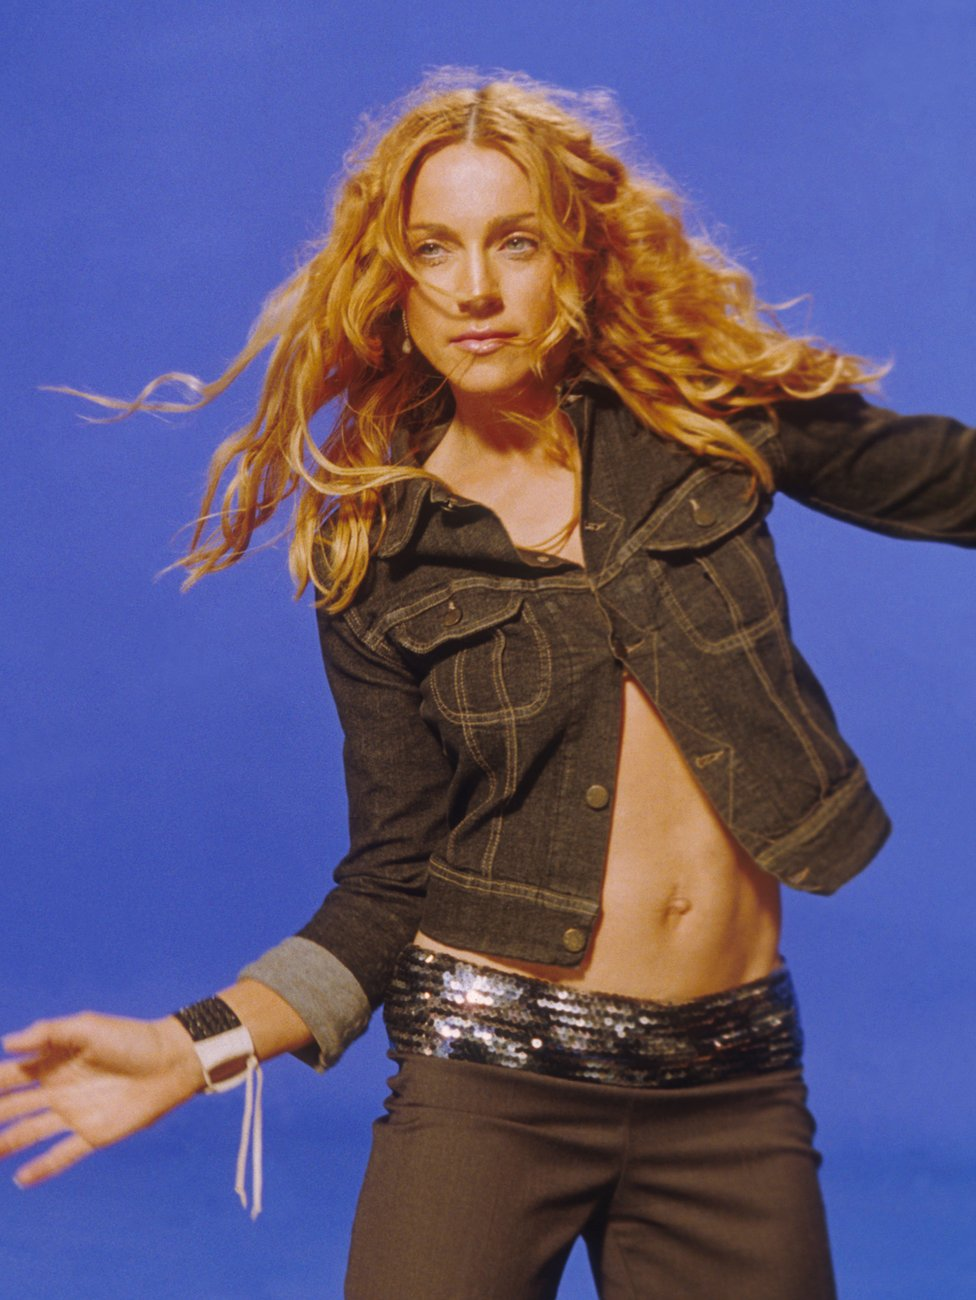 Madonna on the set of her 'Ray of Light' video in 1998